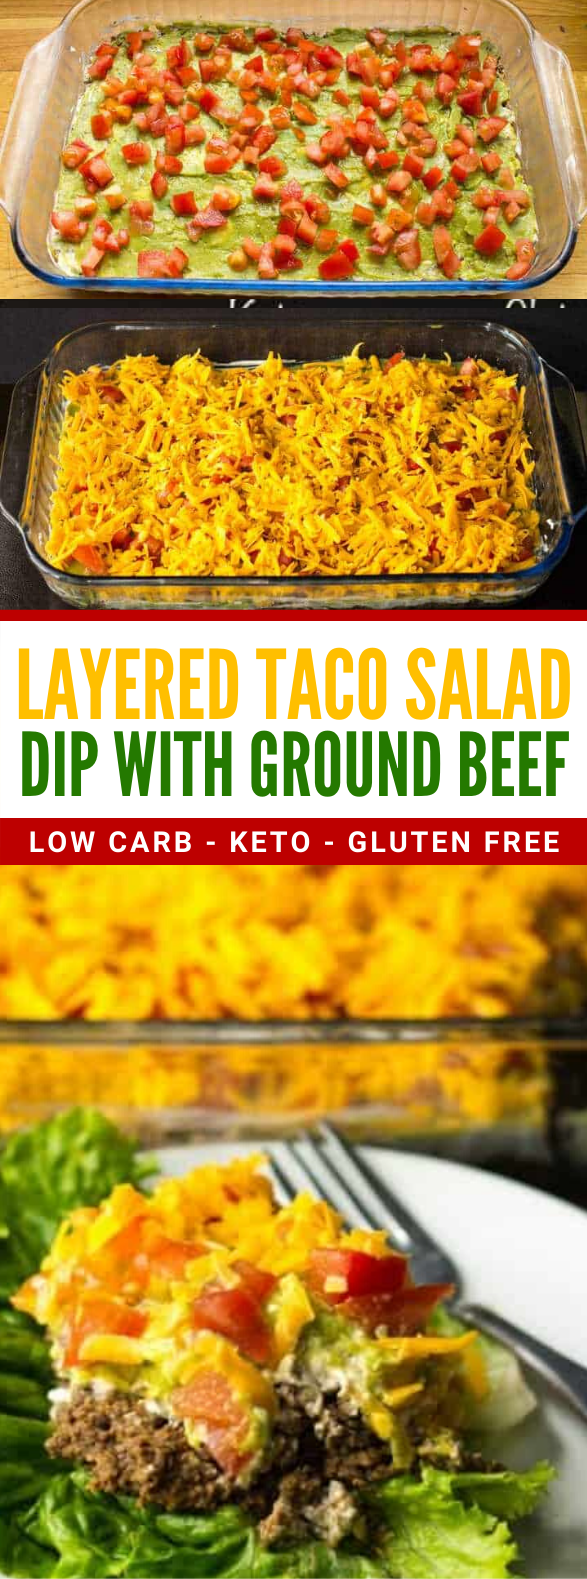 Taco Dip with Meat (Keto, Low Carb) #diet #salad